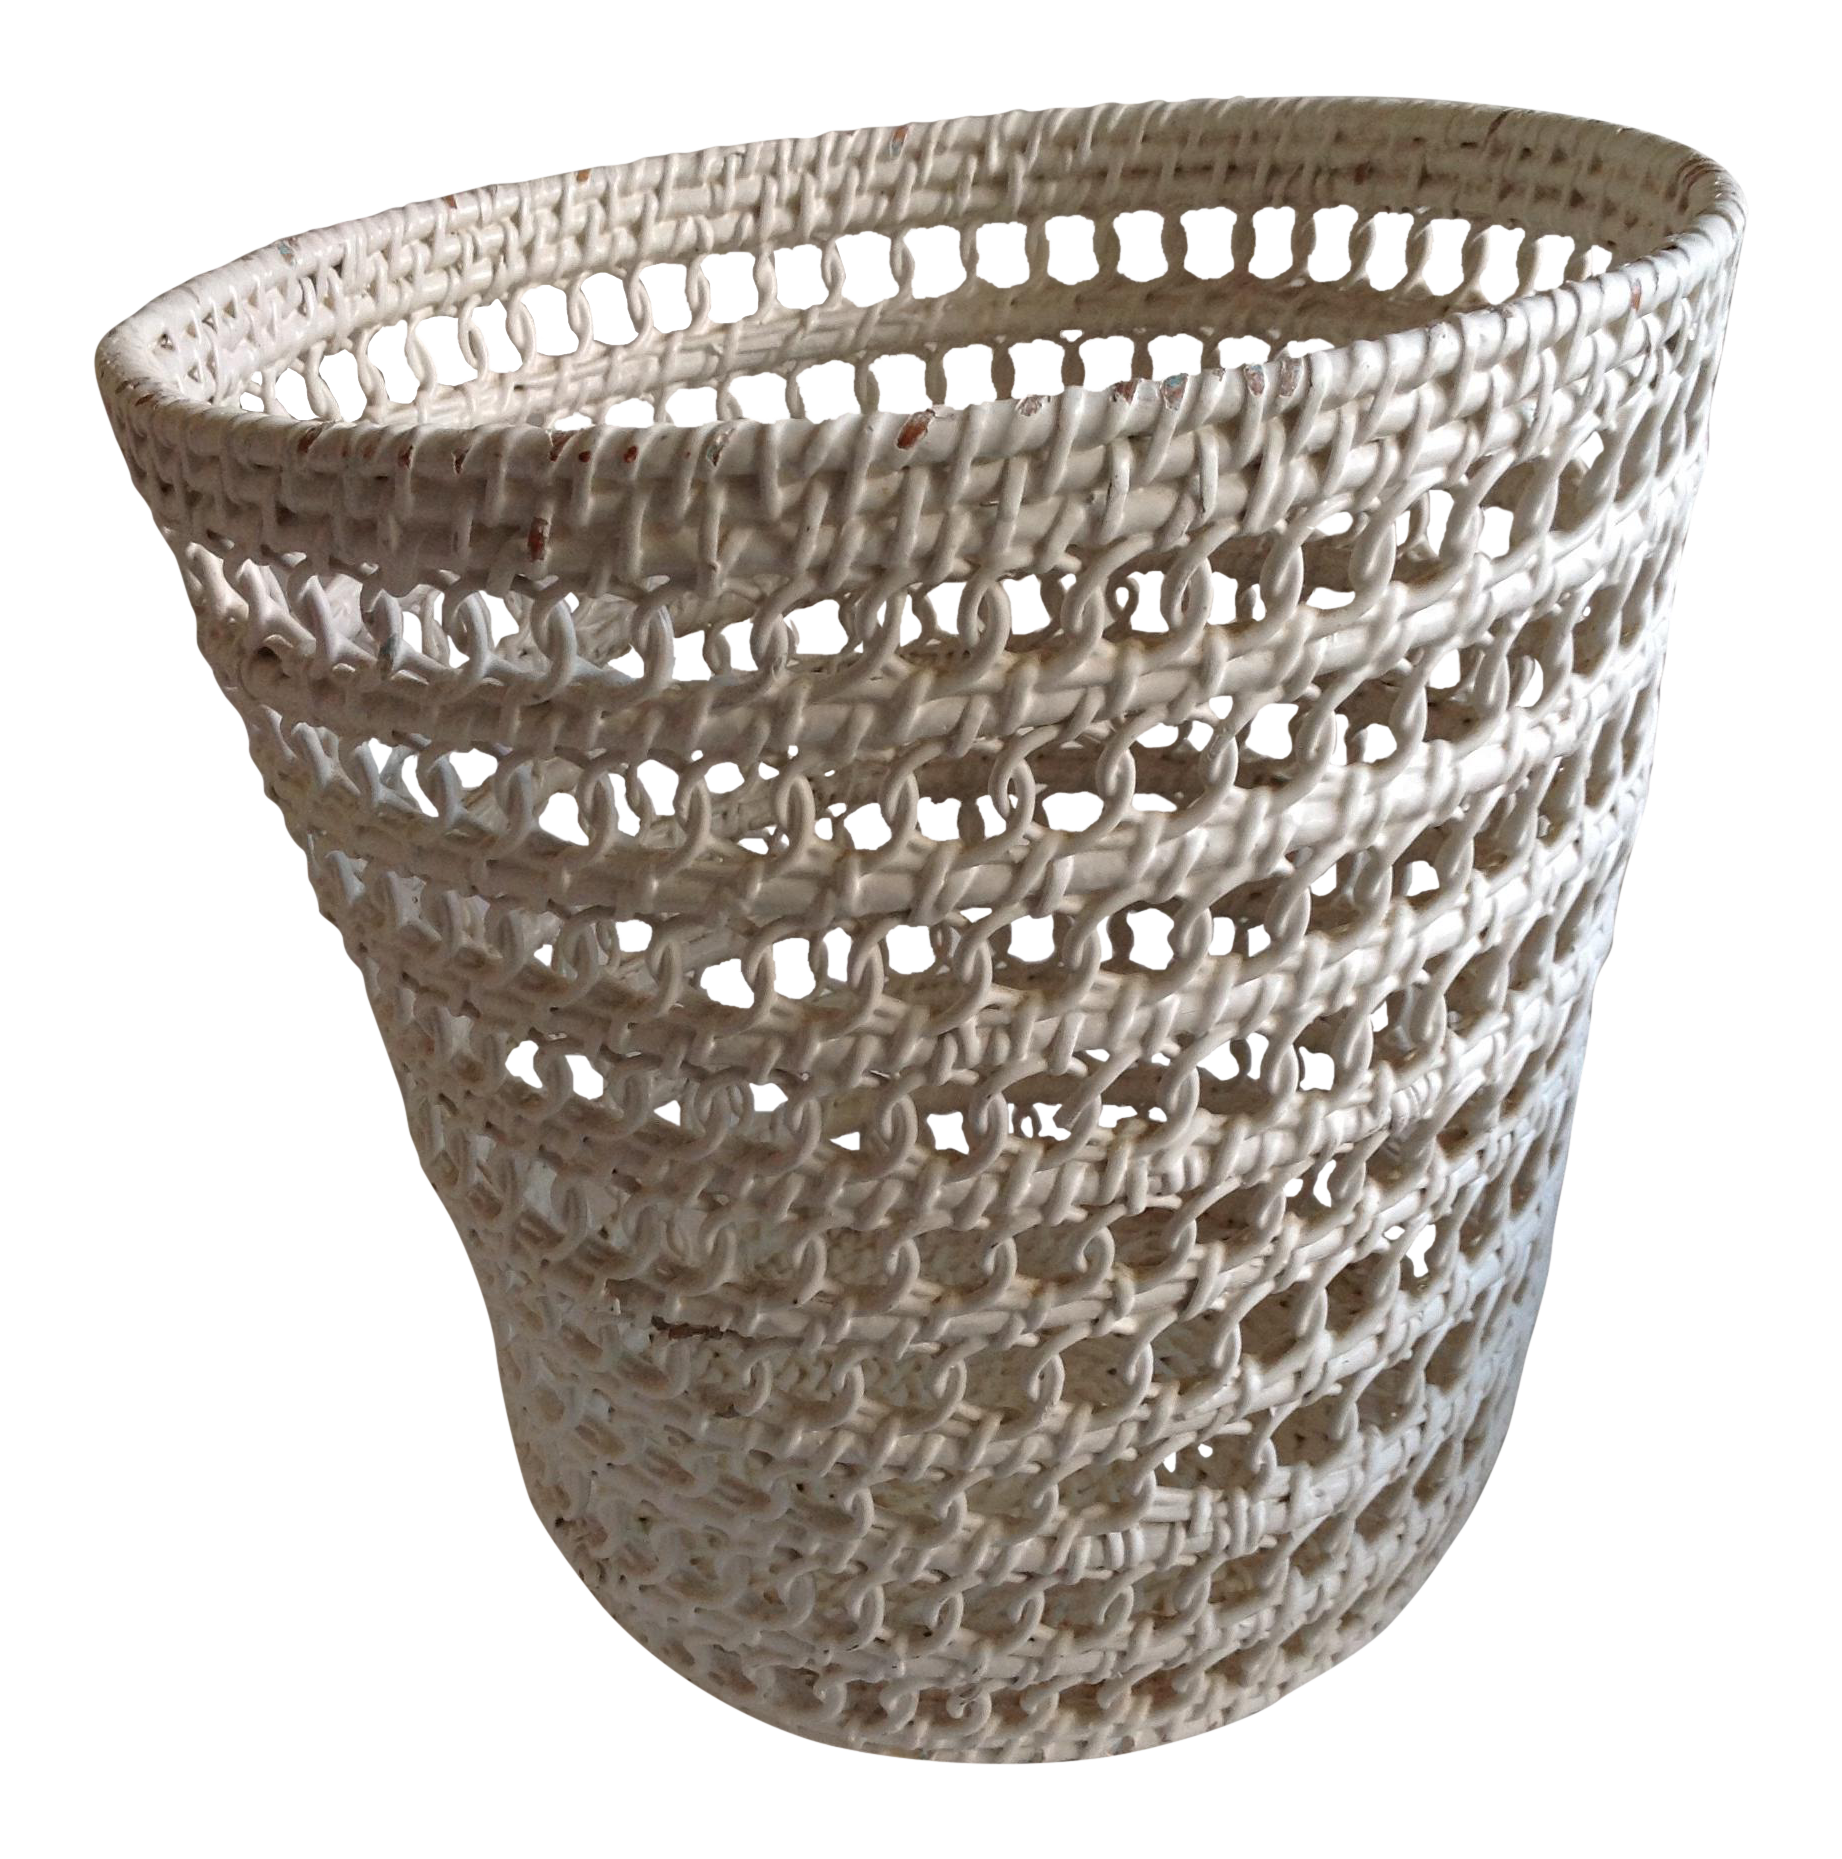 White wicker vintage waste basket chairish - Wicker trash basket ...